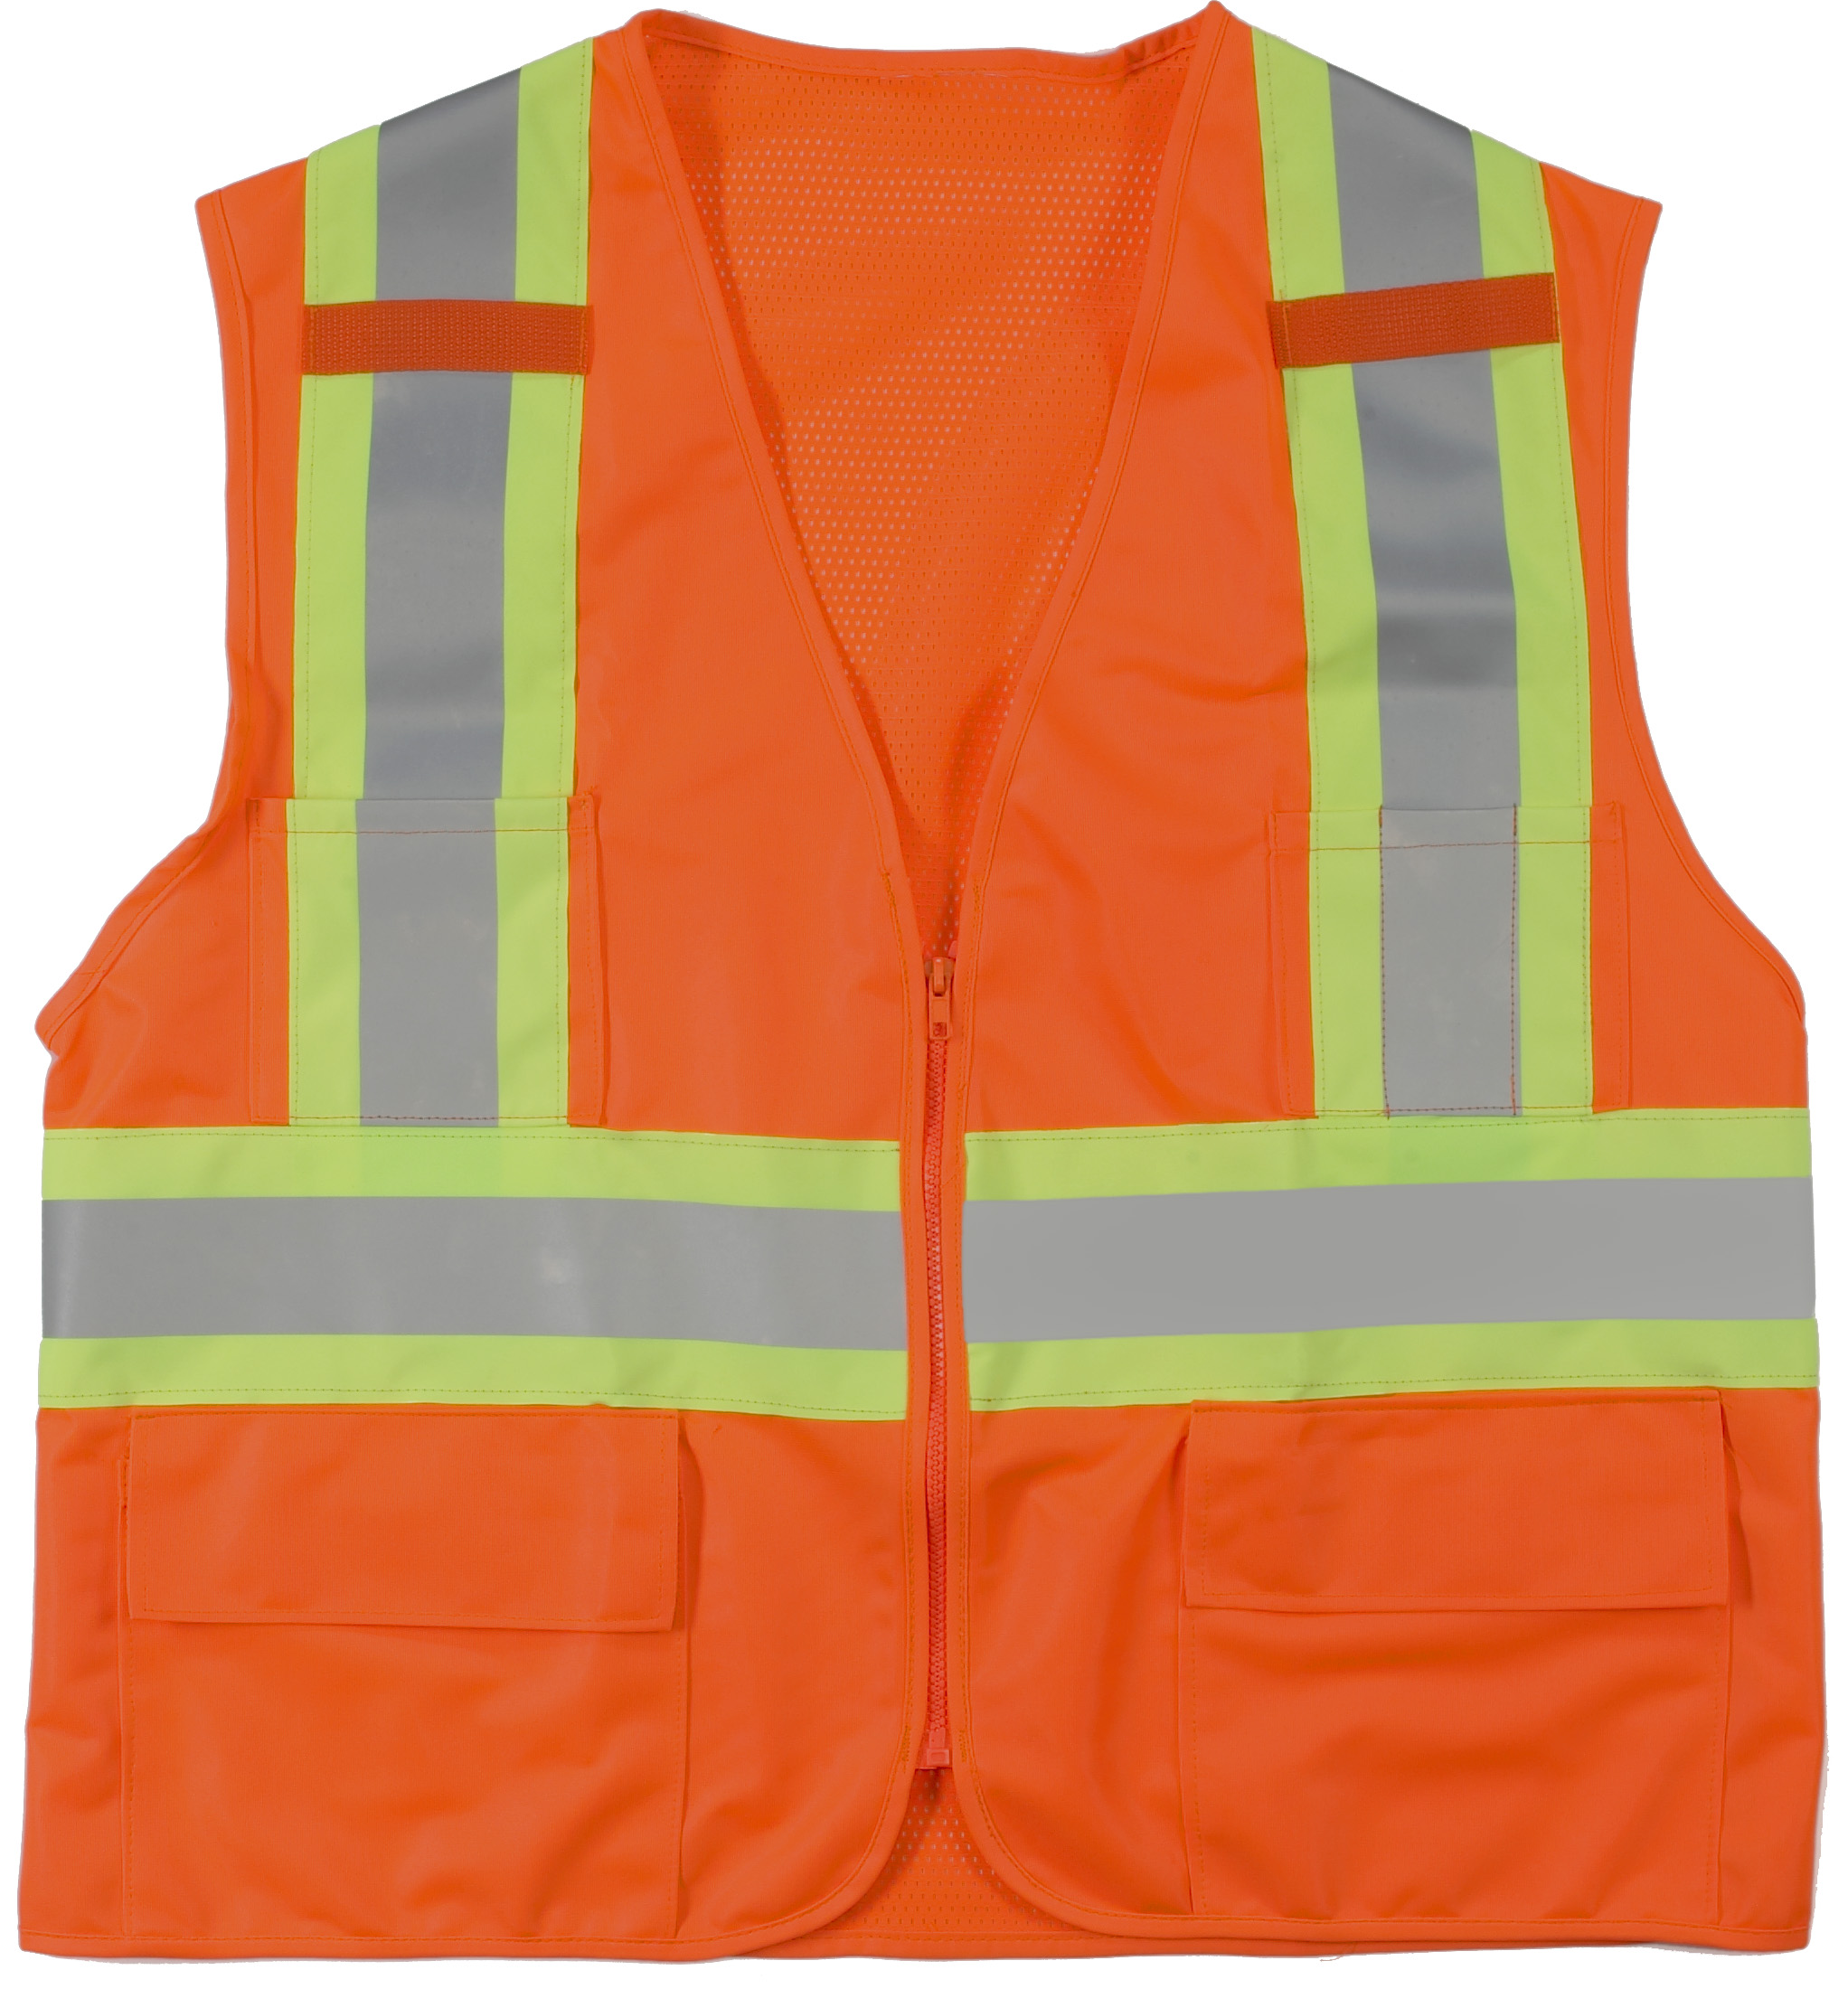 16368-0-4, High Visibility Polyester ANSI Class 2 Surveyor Safety Vest with Pouch Pockets and 4 Lime/Silver/Lime Reflective Tape, X-Large, Orange, Mutual Industries